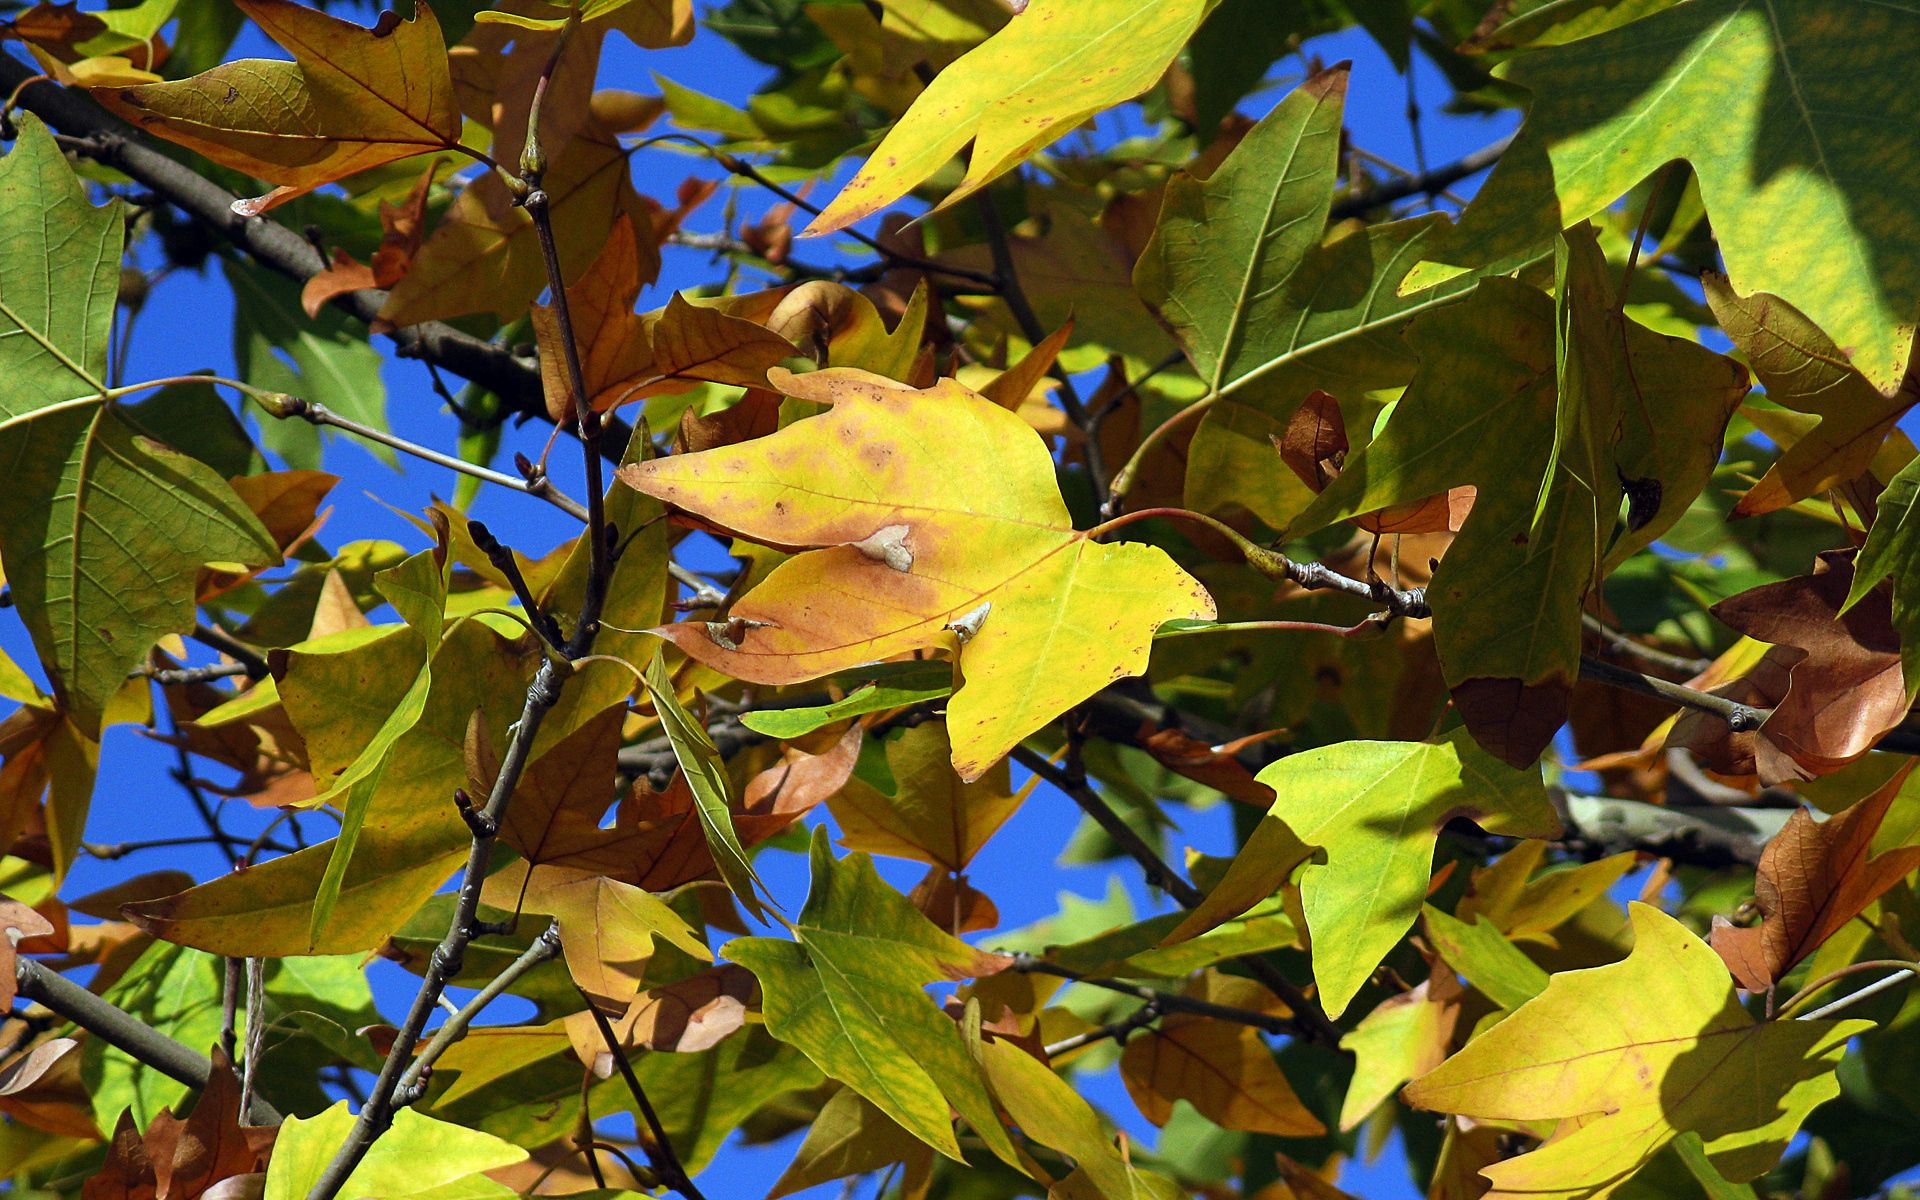 144248 download wallpaper Nature, Leaves, Maple, Dry, Autumn screensavers and pictures for free